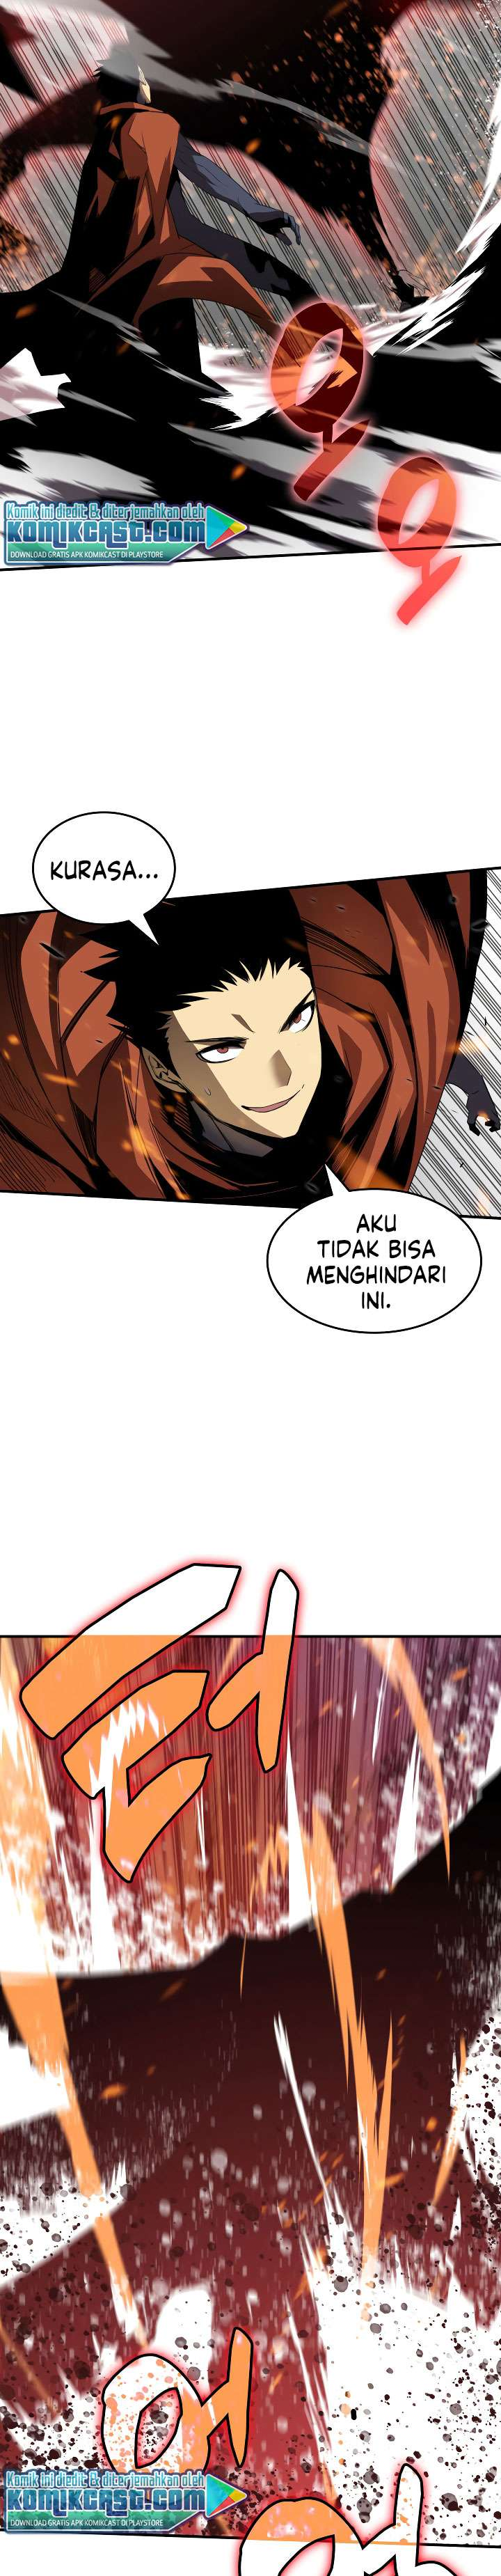 Worn and Torn Newbie Chapter 41 Bahasa Indonesia page 9